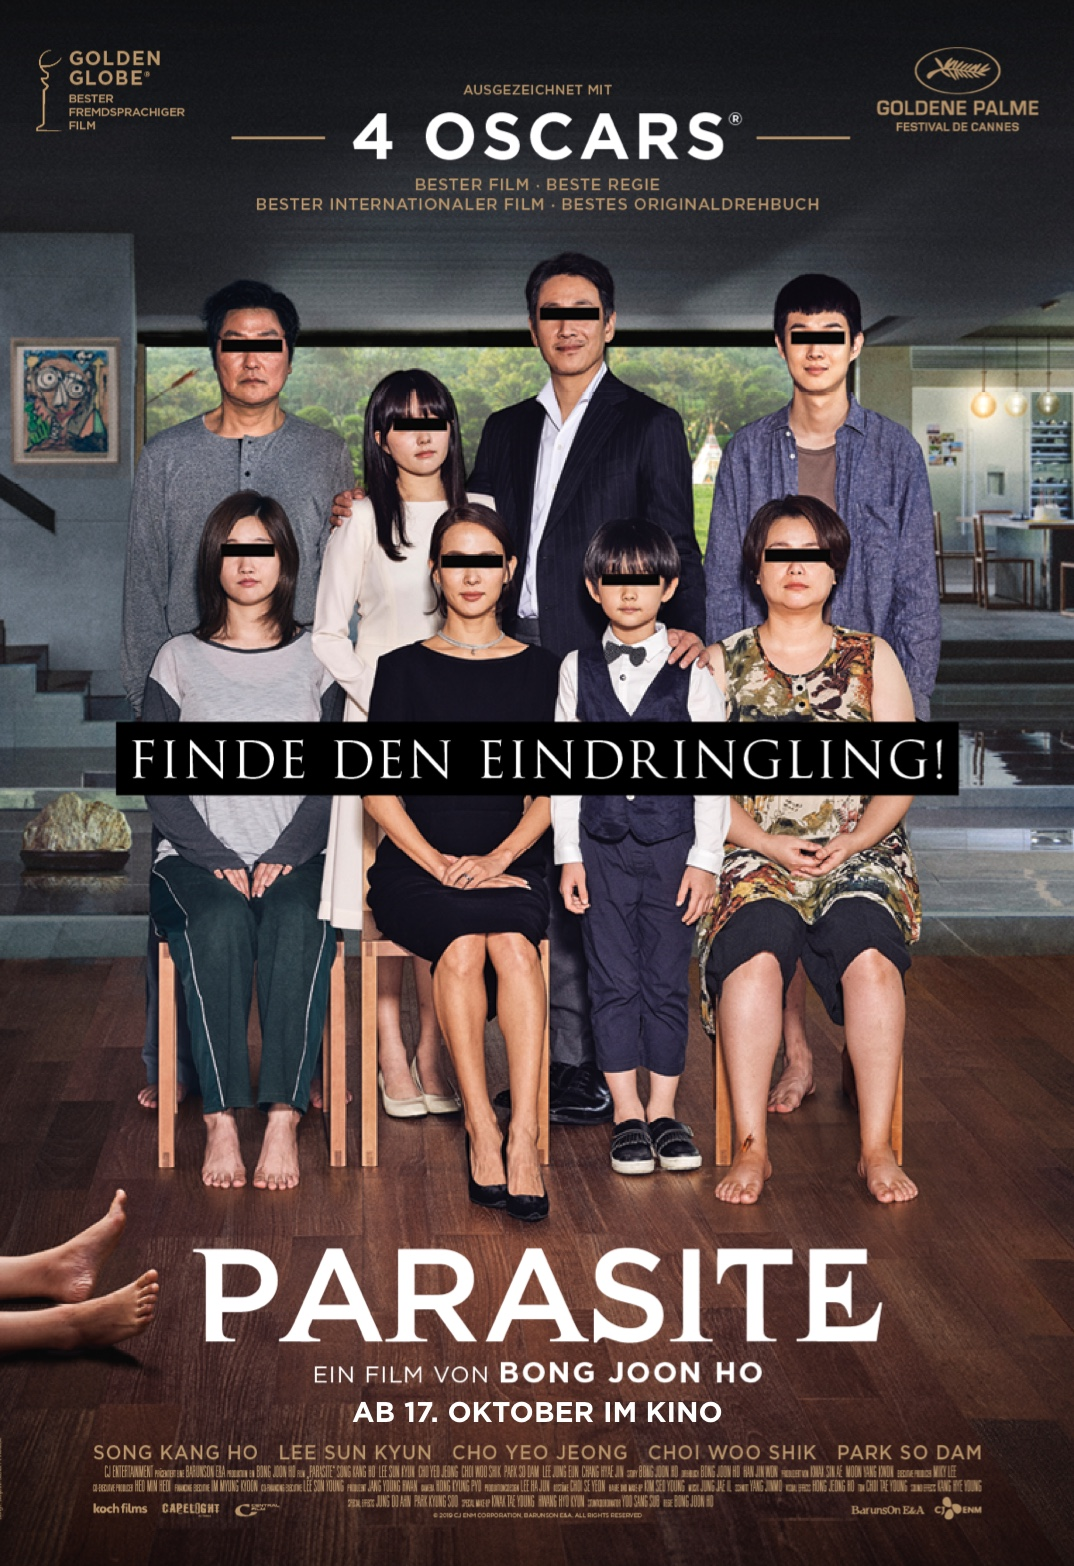 Poster image for Parasite